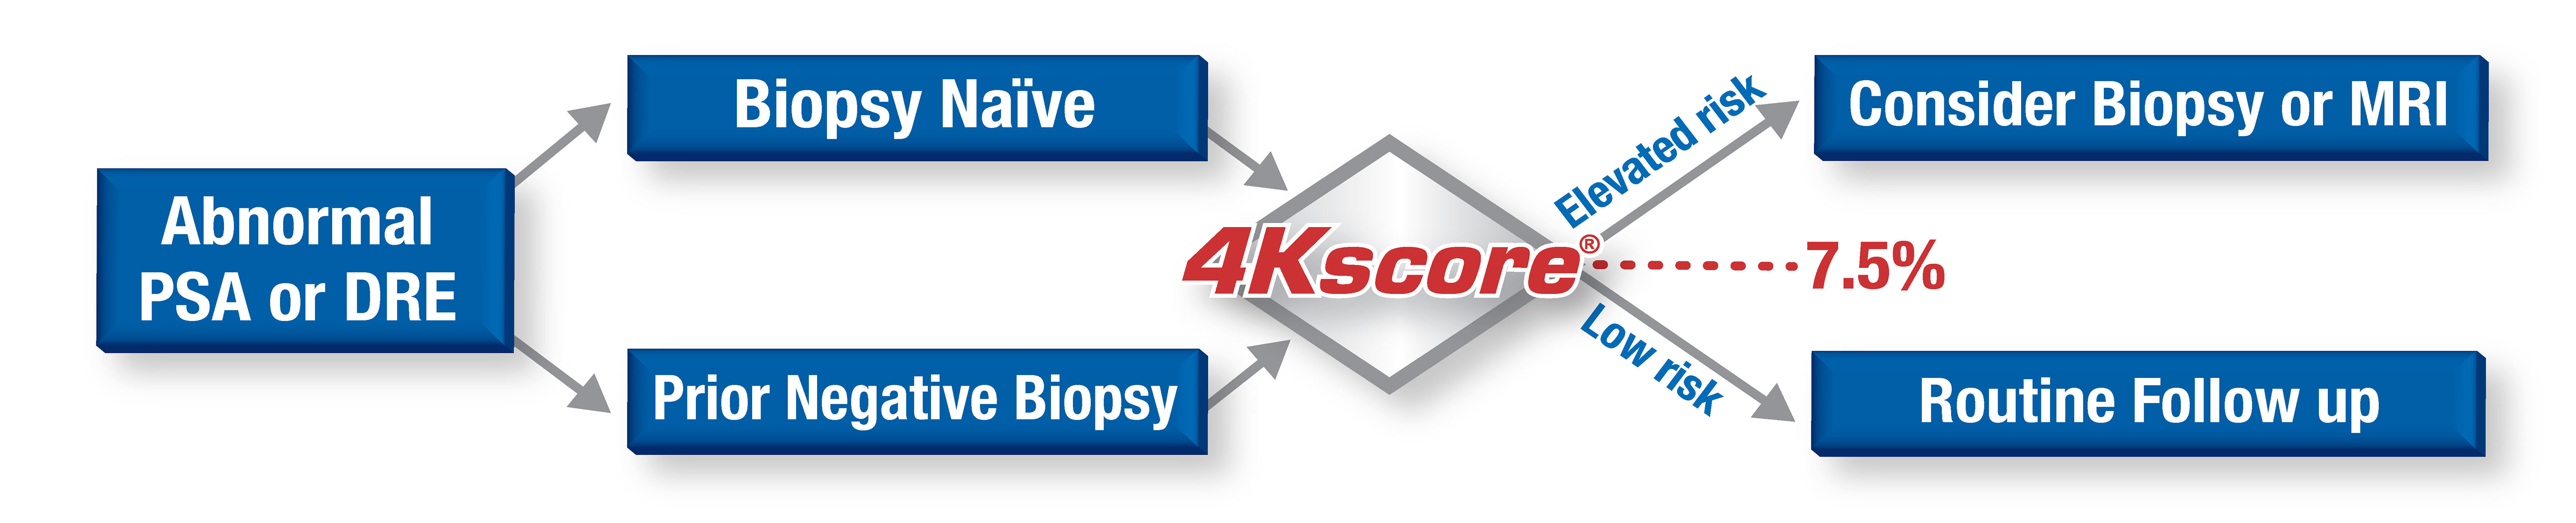 Flowchart: Abnormal PSA or DRE leads to either Biopsy Naive or Prior negative biopsy. Both lead to 4Kscore. Leads to elevated risk consider biopsy or MRI, or low risk routine follow up